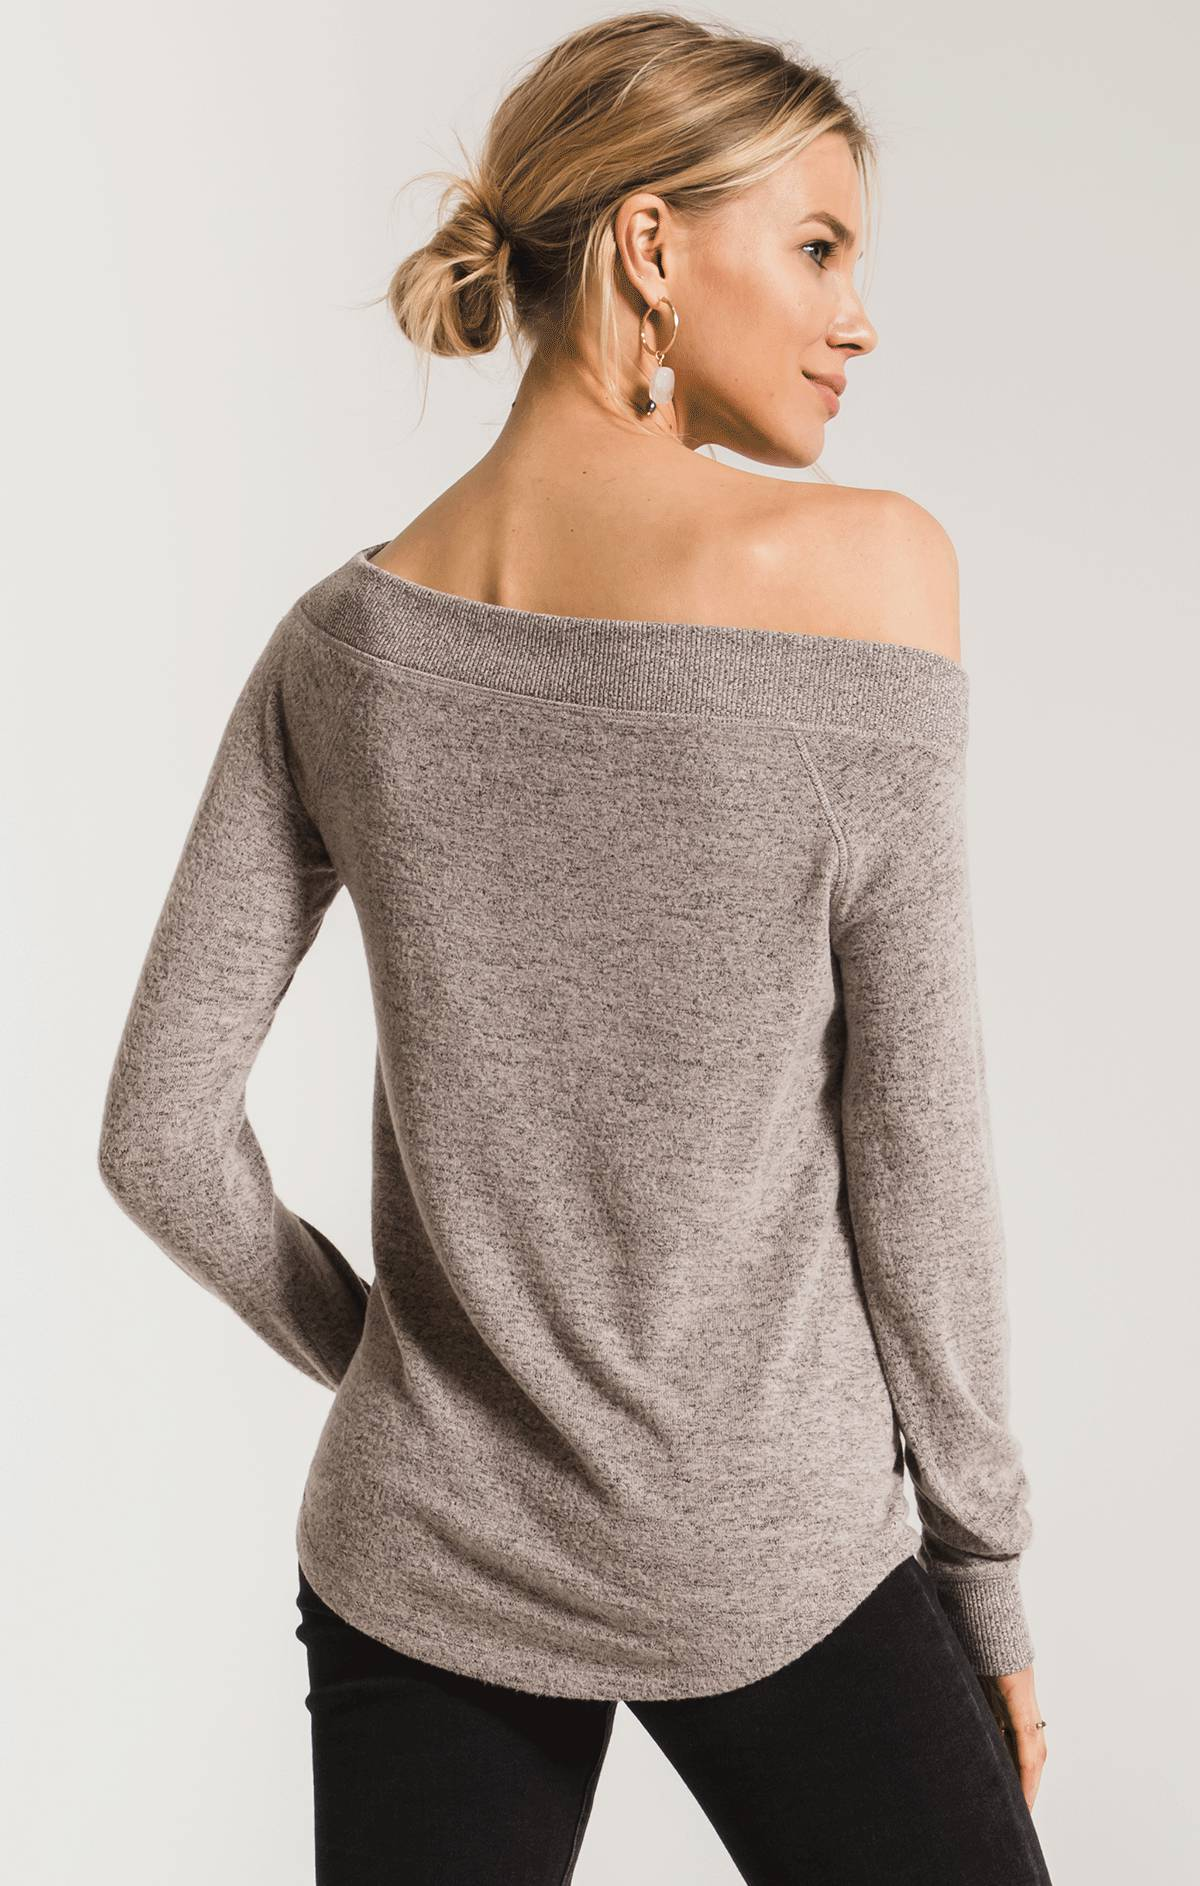 Tops Marled Sweater Knit One Shoulder Top Mushroom